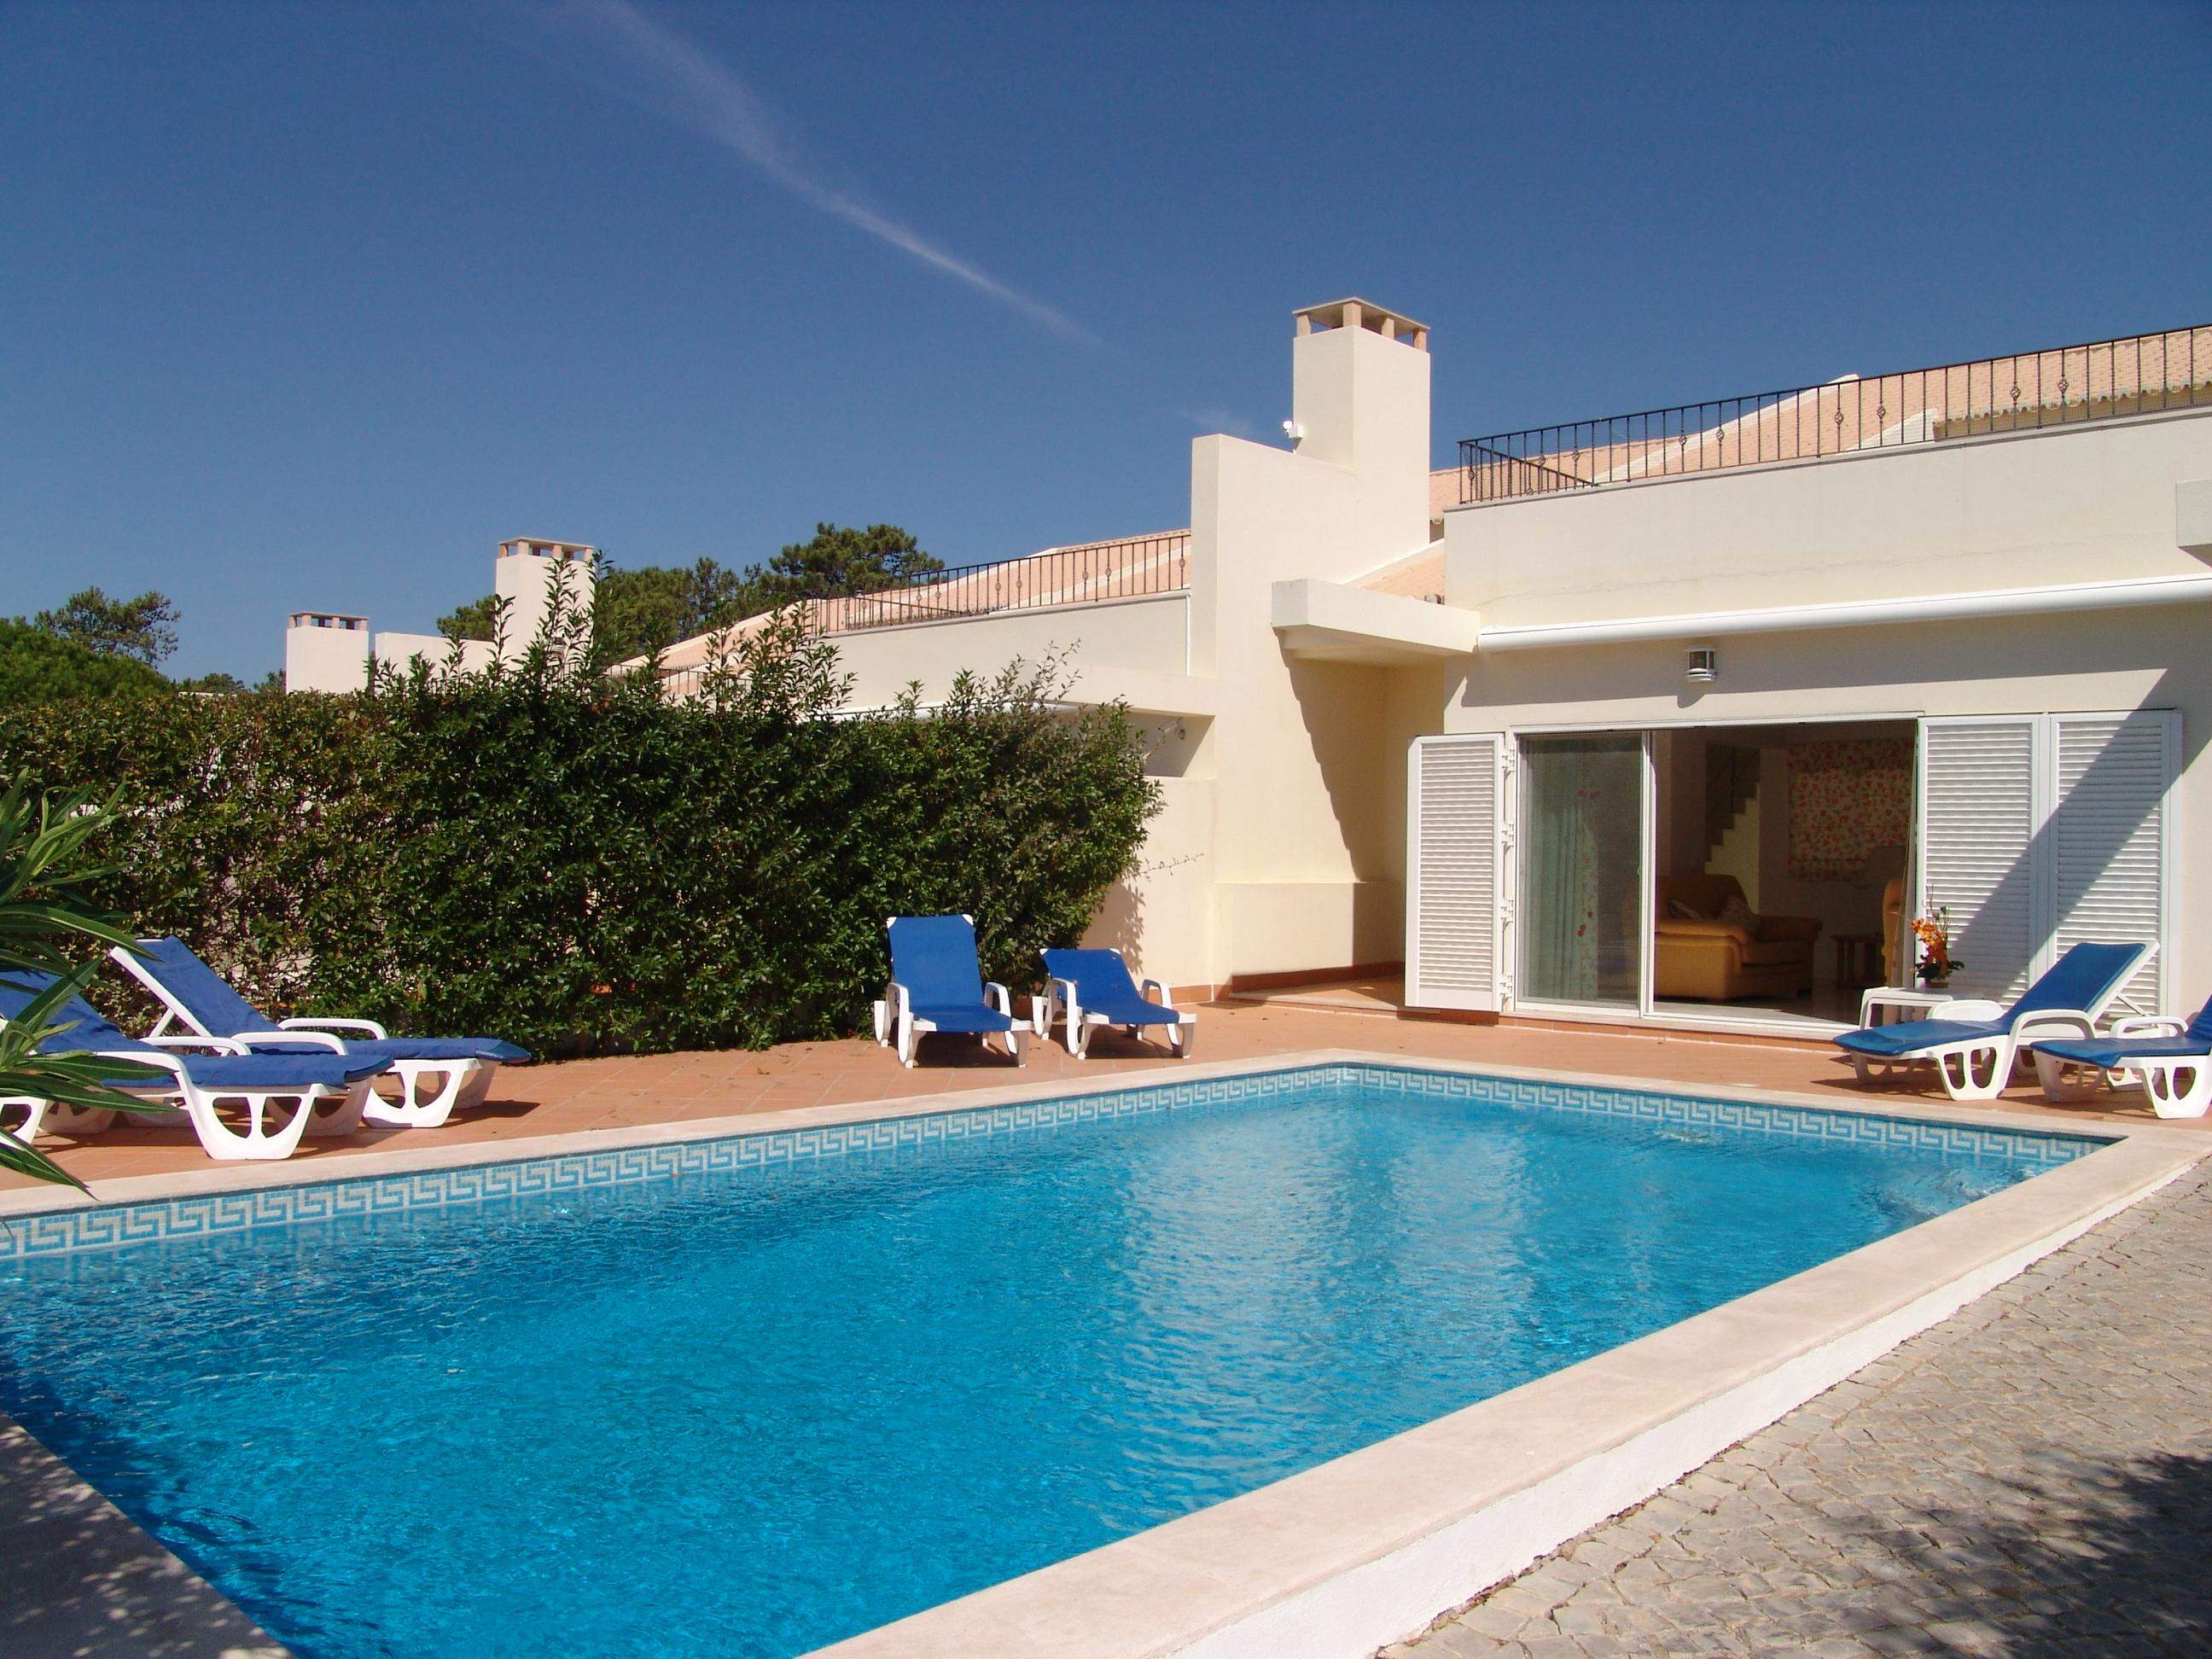 Villa 29, 4 bedroom villa in Vale do Lobo, Algarve Photo #1